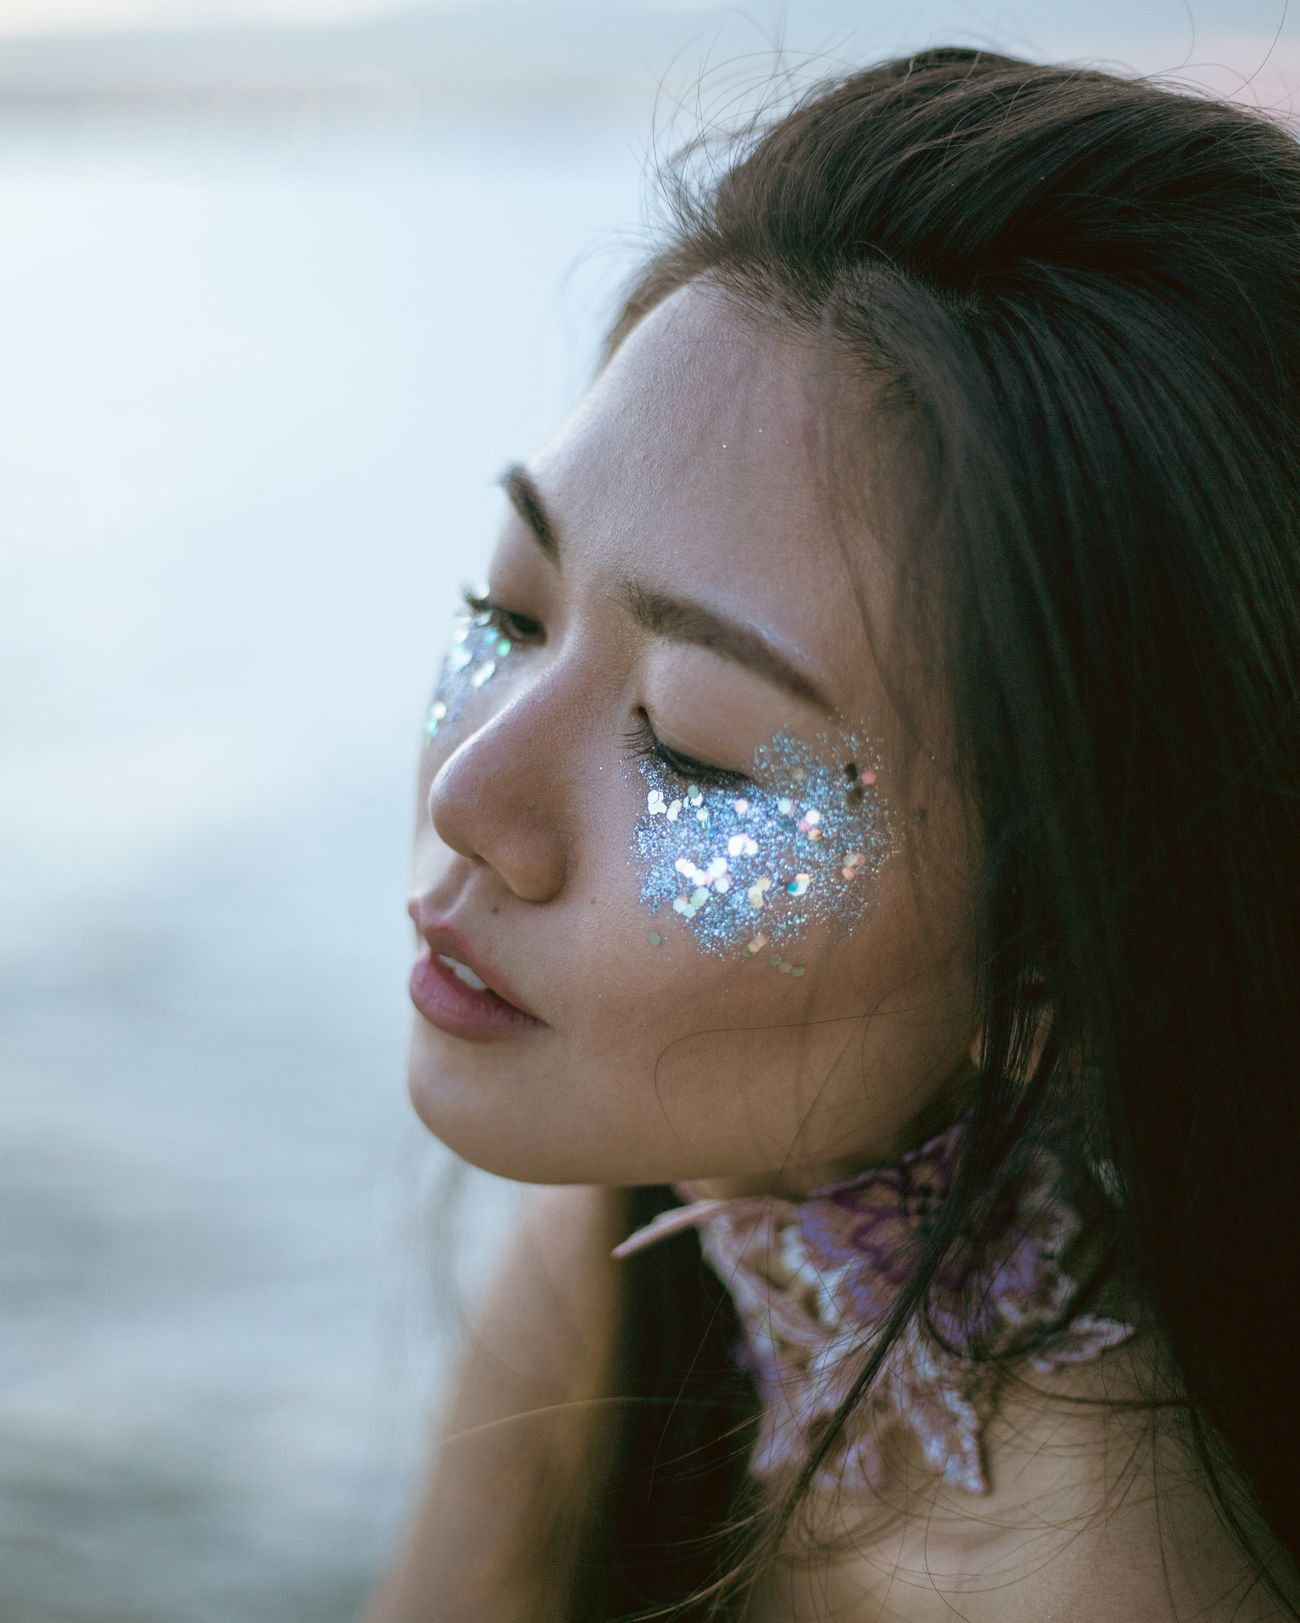 collecting cosmic dust Make-up Beauty Natural Light Portrait Fine Art Photography Beautiful People Portrait Of A Girl Portrait Of A Woman Portrait Photography Fashion Photography Women Of EyeEm Haute Couture Glitter Glitter Makeup One Woman Only Uniqueness